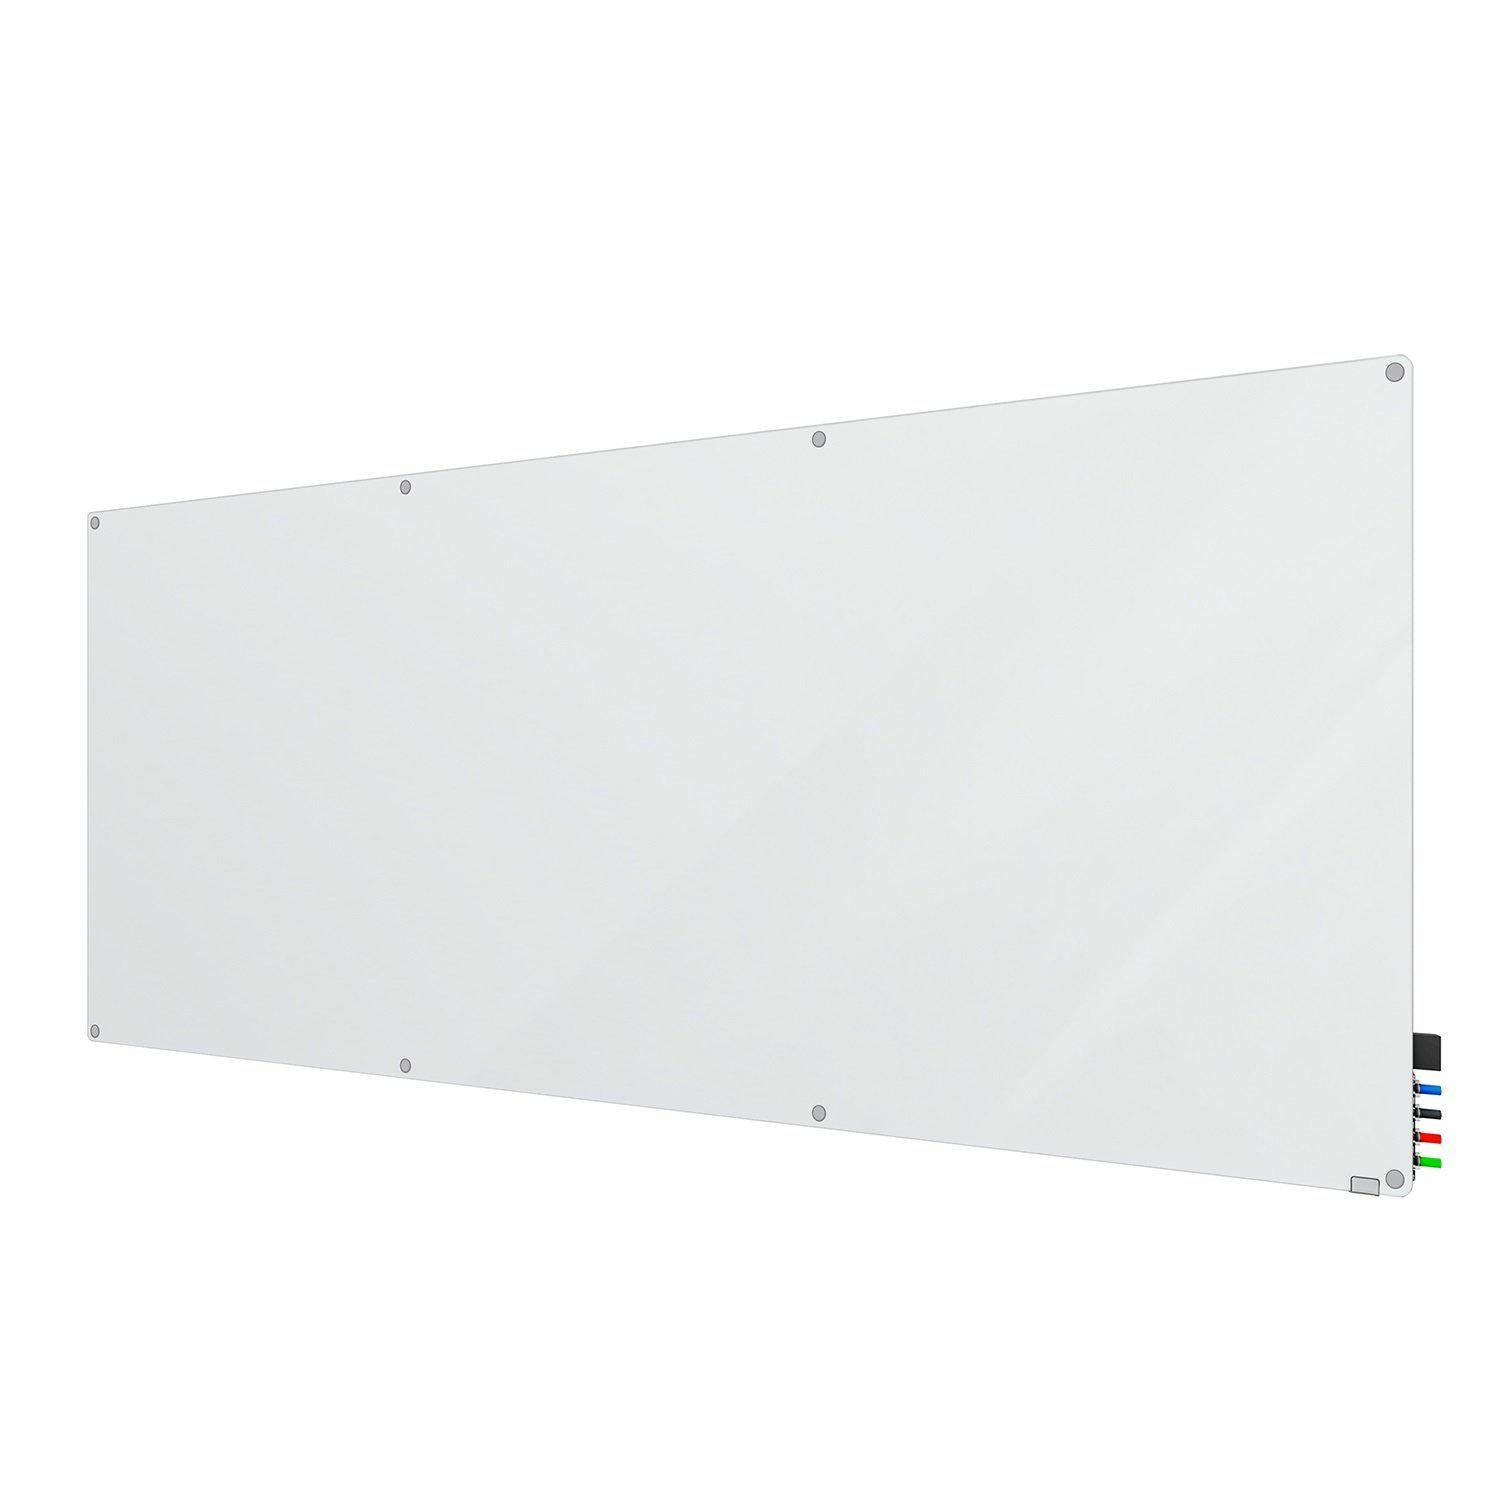 Harmony Frosted Glassboard, Non-Magnetic, Radius Corners, 4' H x 10' W